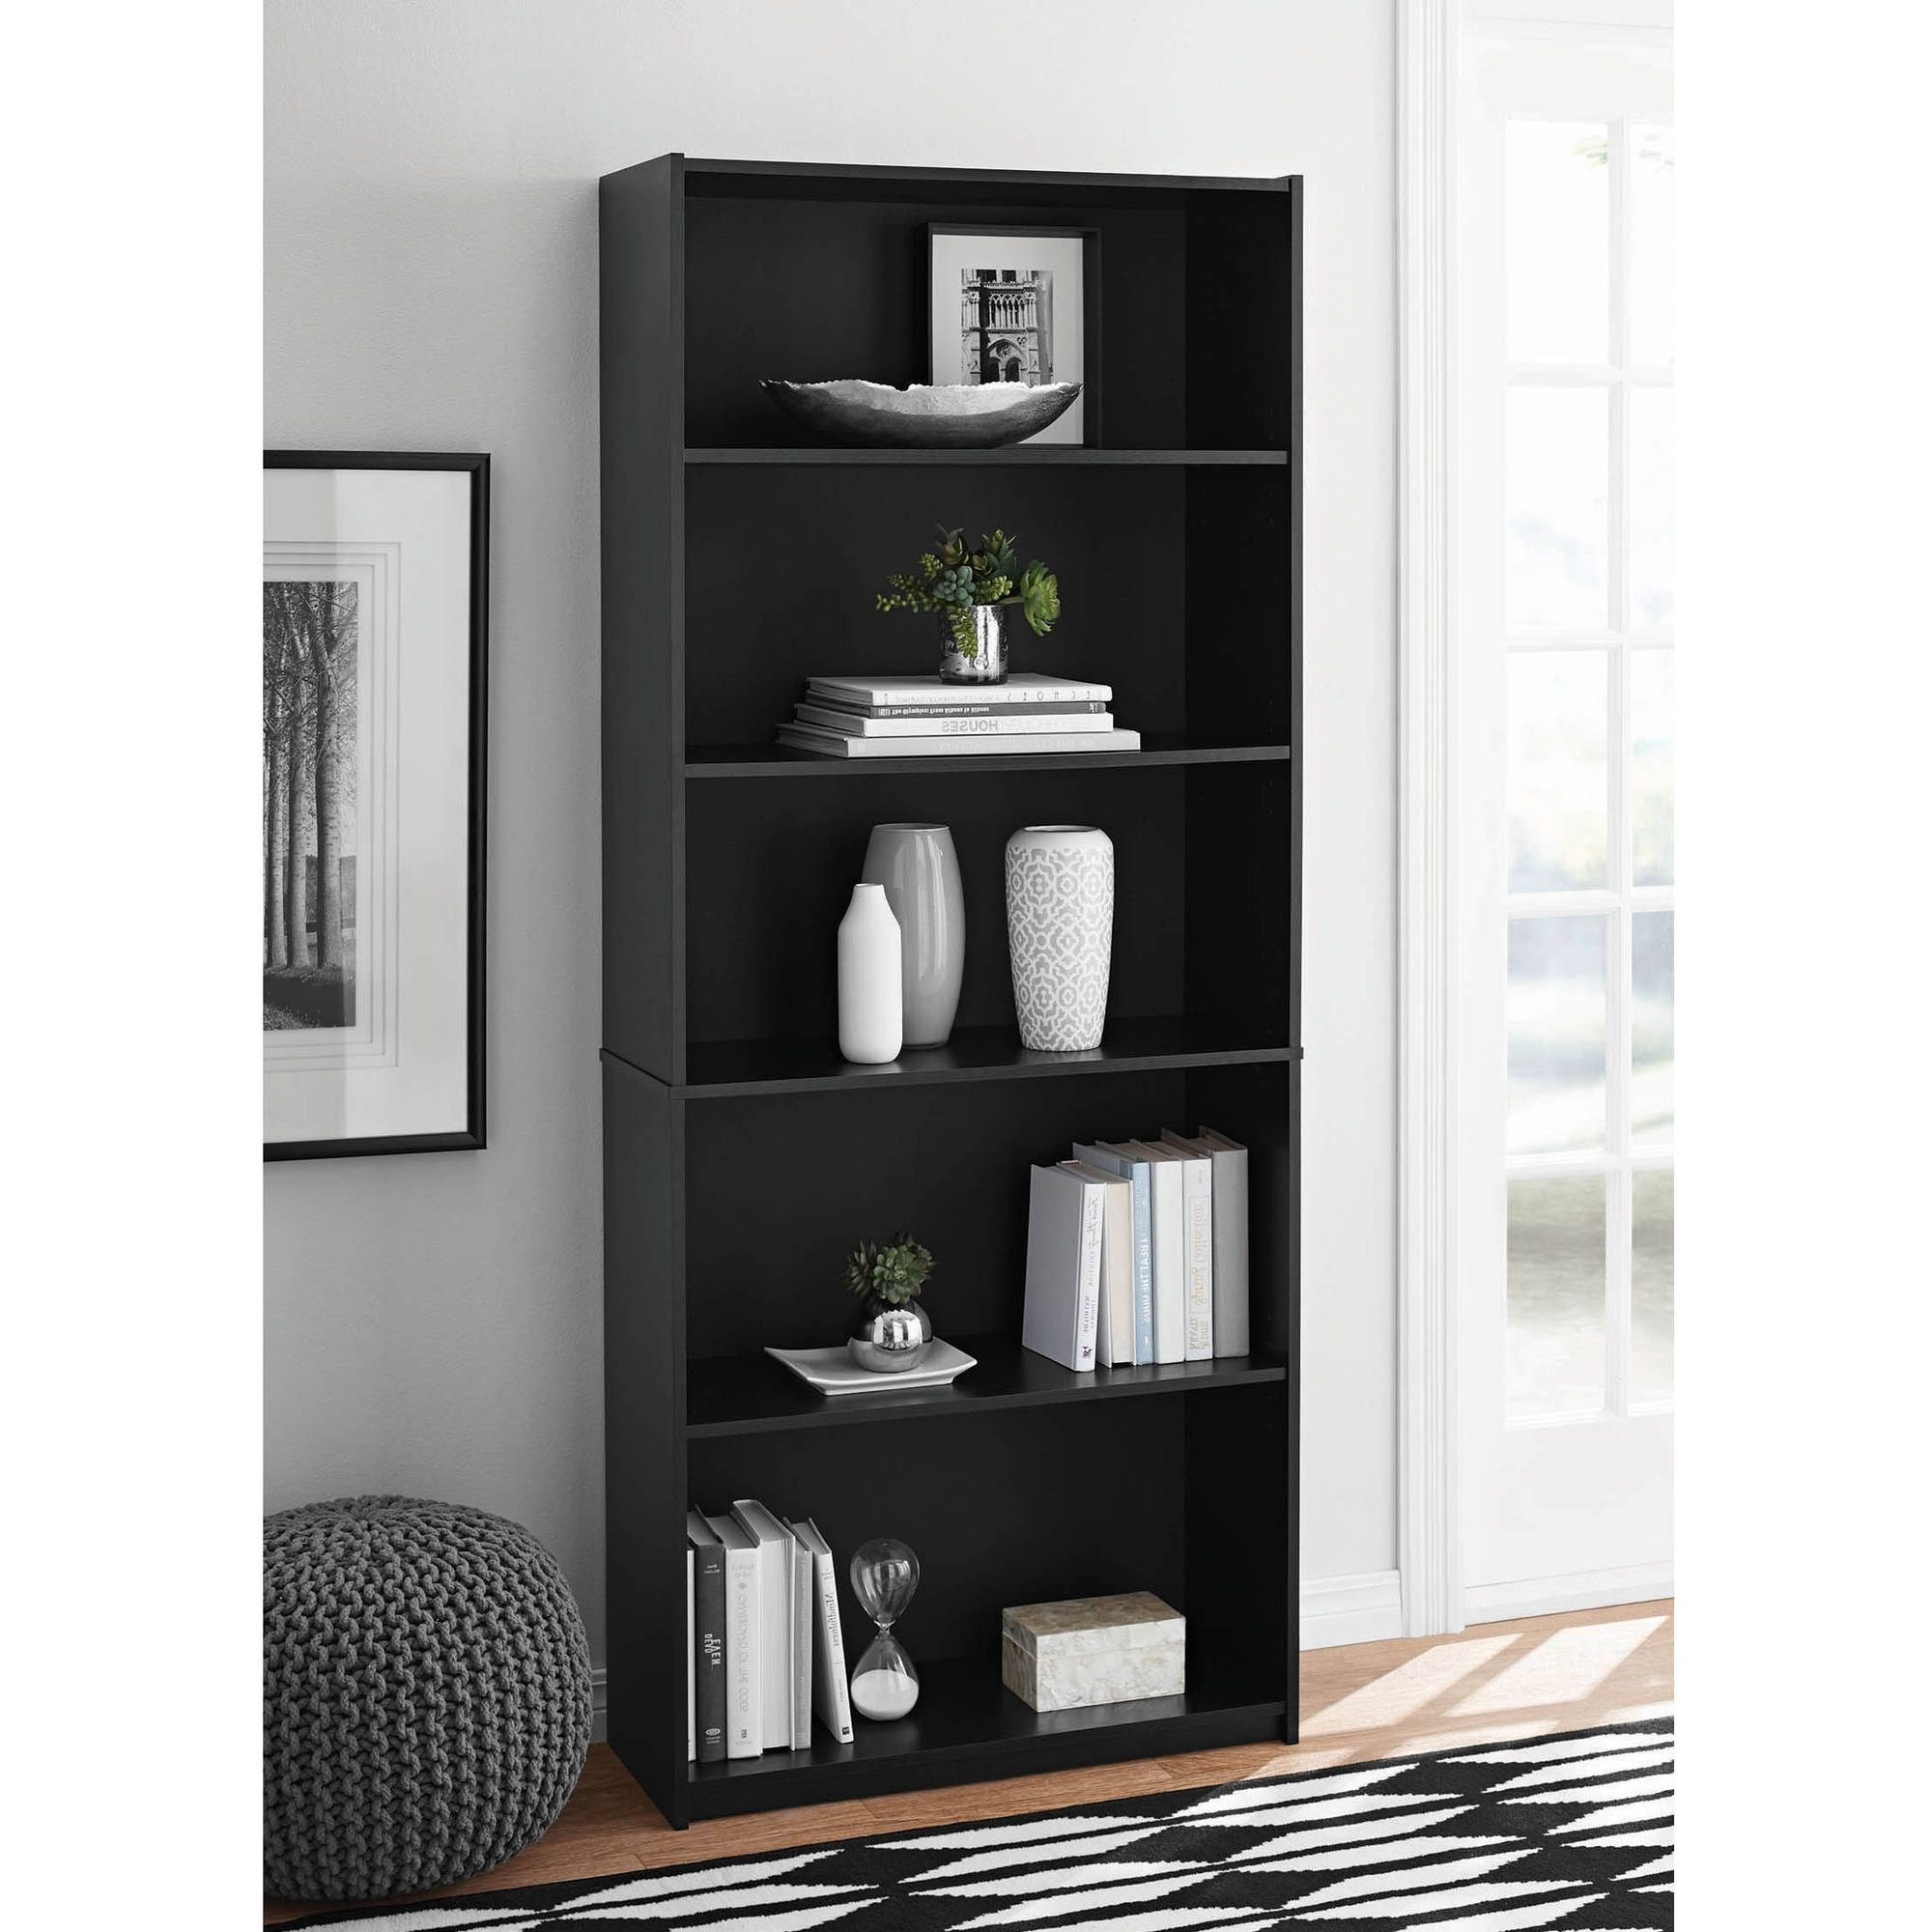 Mainstays 5 Shelf Bookcases With Regard To Well Known Mainstays 5 Shelf Standard Wood Bookcase – Walmart (View 7 of 15)